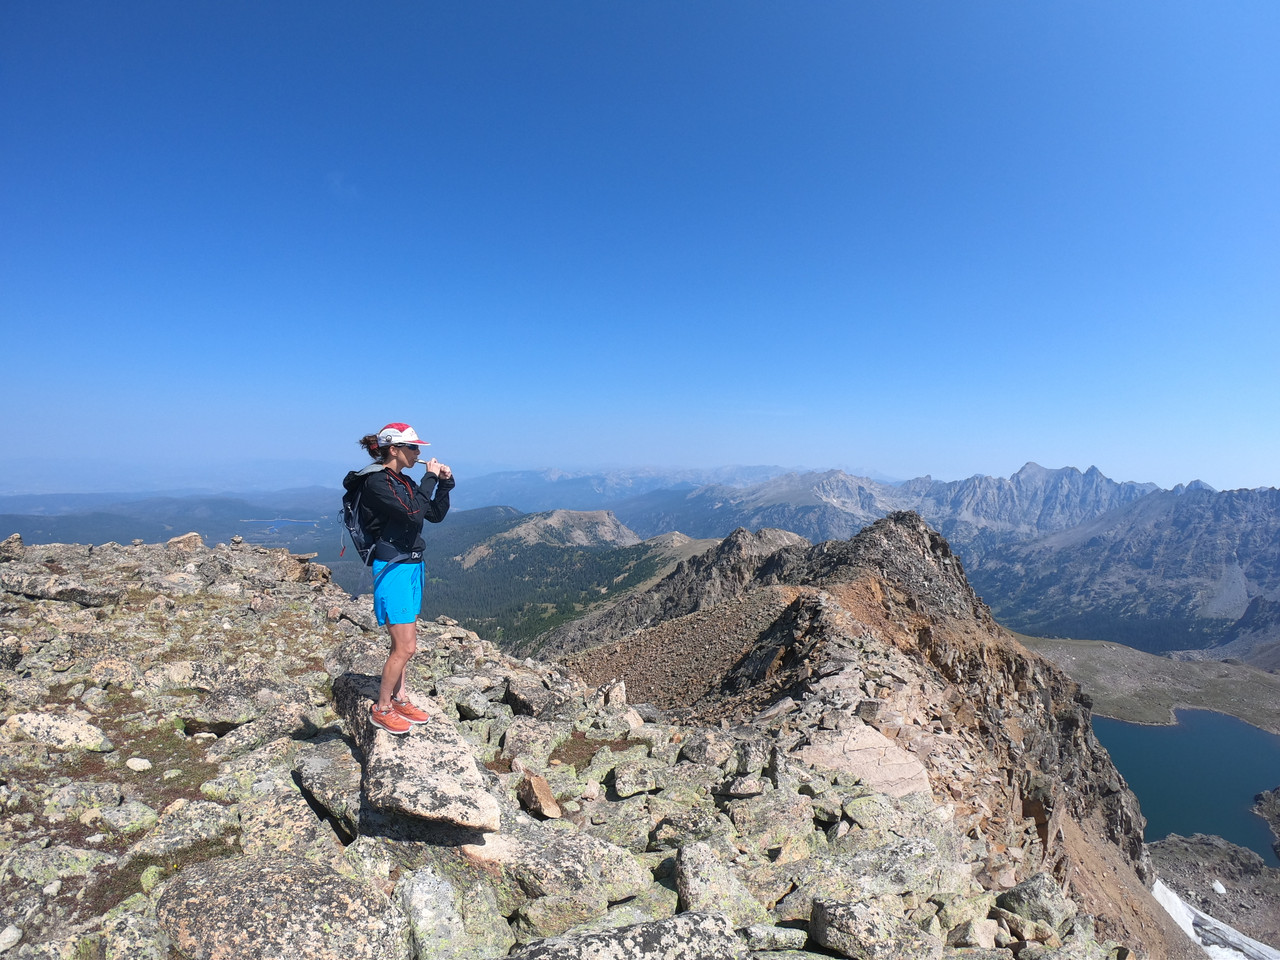 Leading into Leadville: How to Prepare for the Leadville Trail 100 Running Race